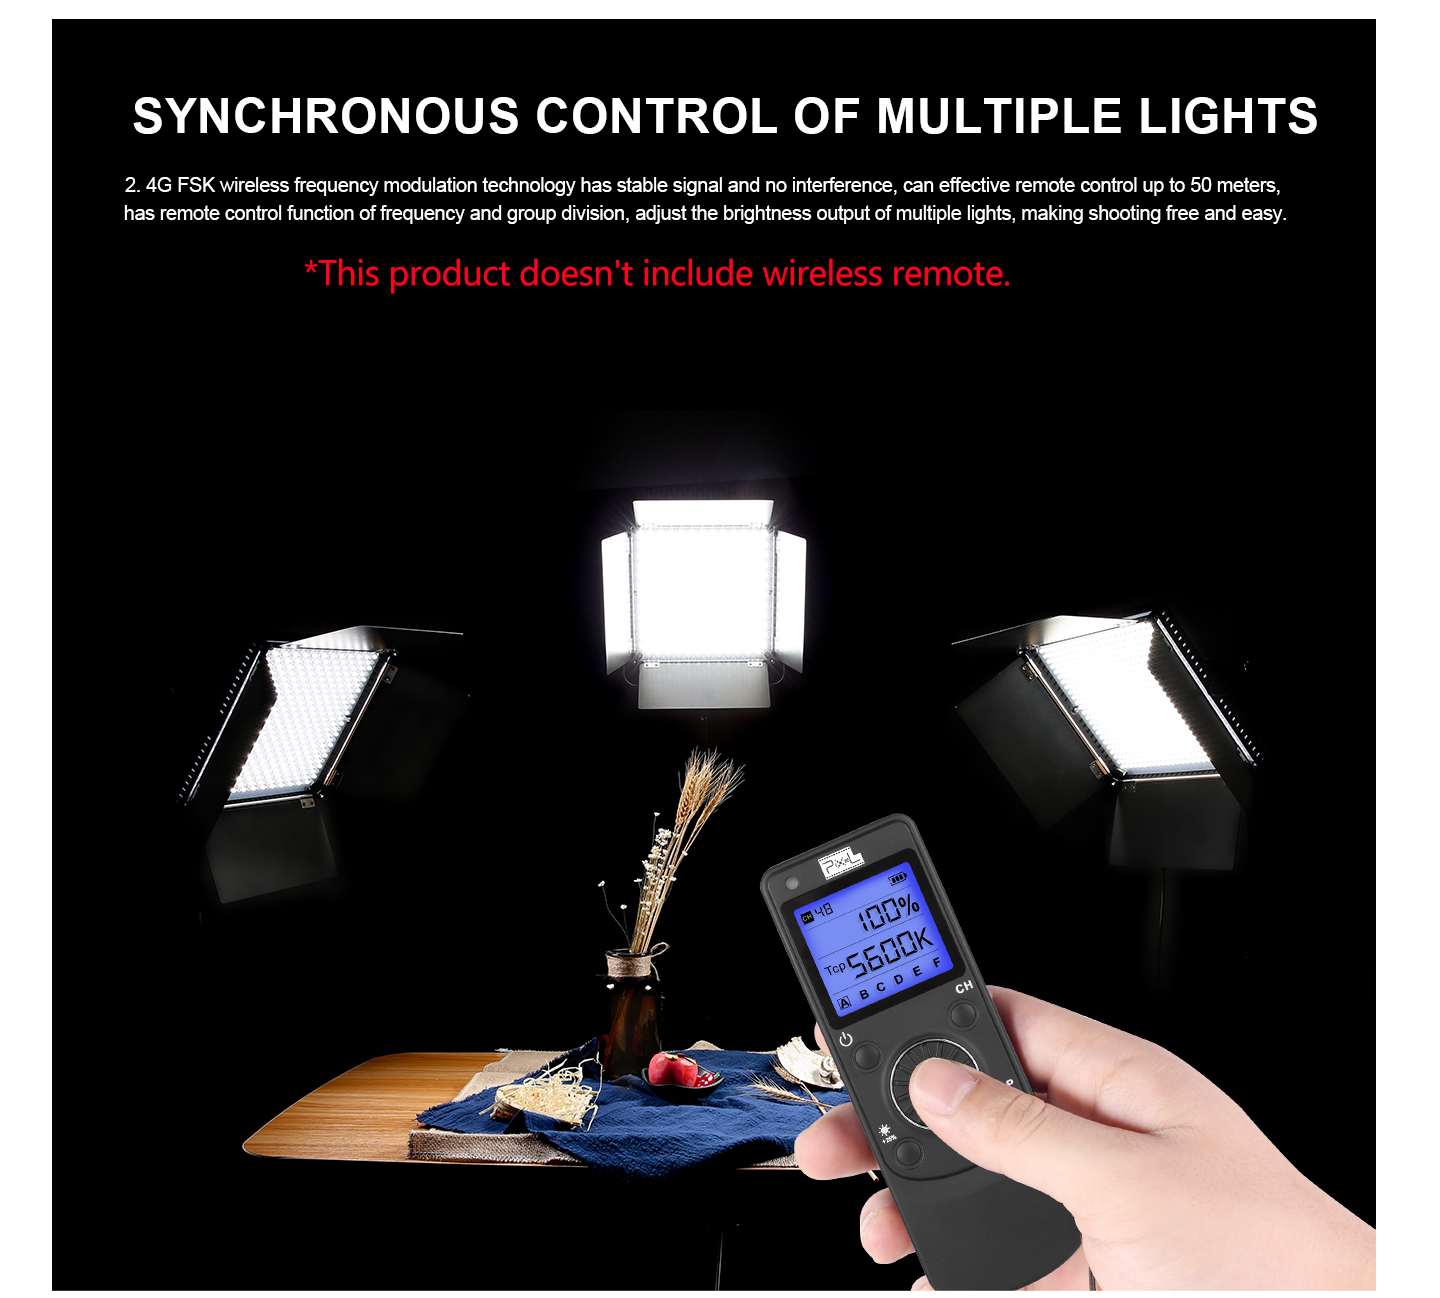 SYNCHRONOUS CONTROL OF MULTIPLE LIGHTS